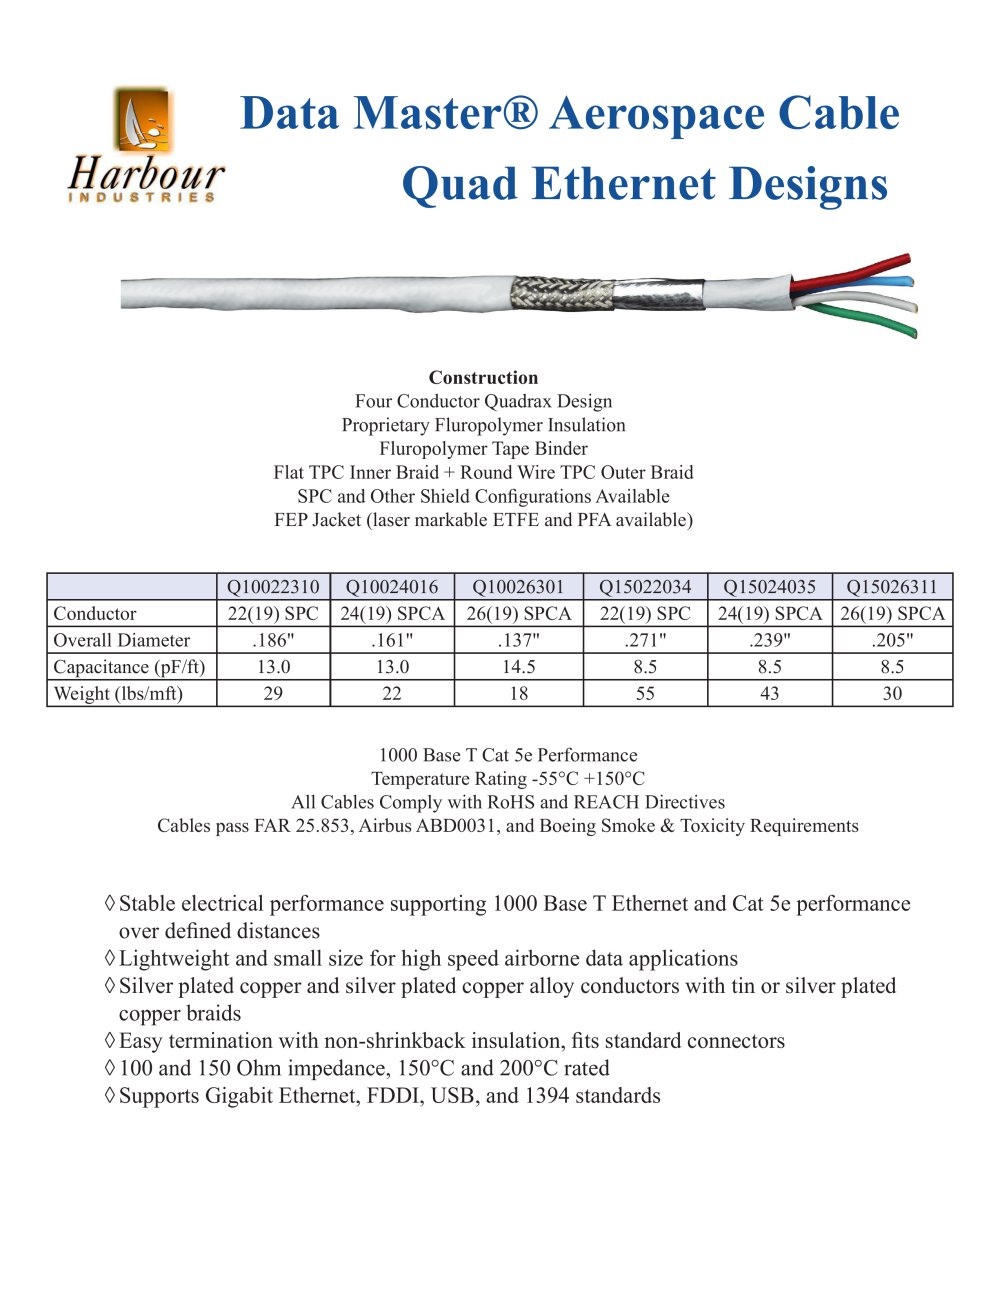 Data Master® Aerospace Cable Quad Ethernet Designs - Harbour ...